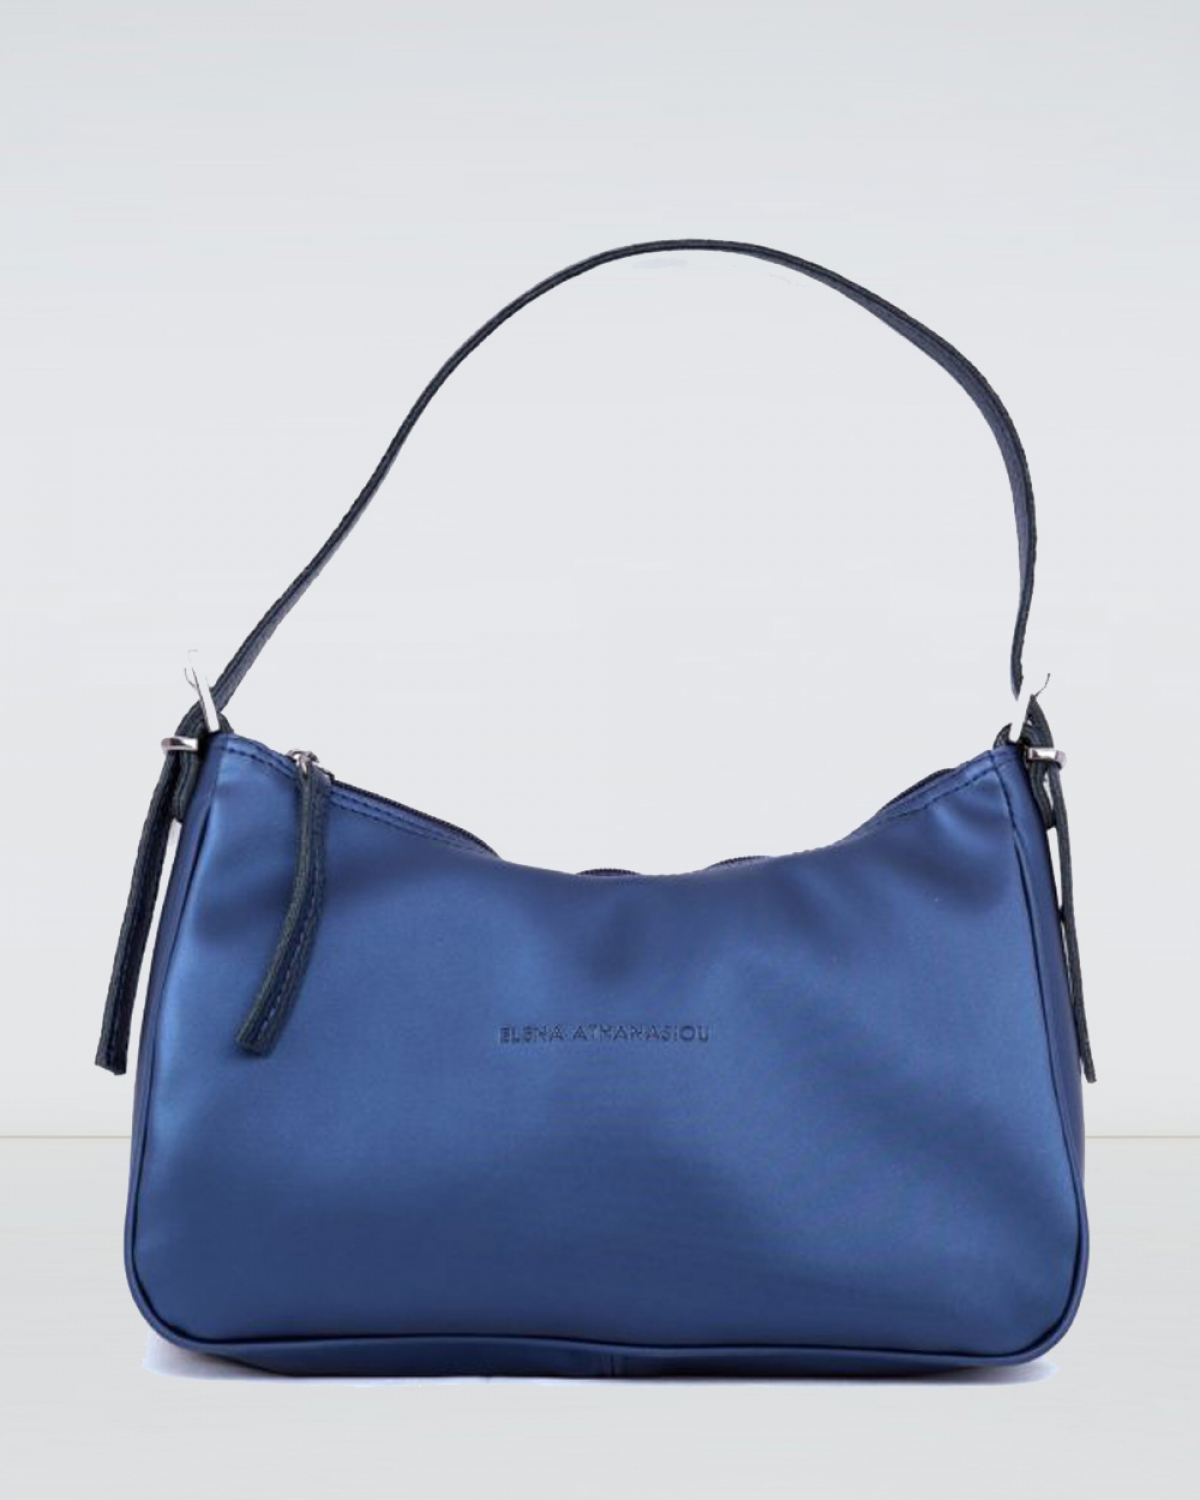 Vintage Baguette Metallic Blue Bag